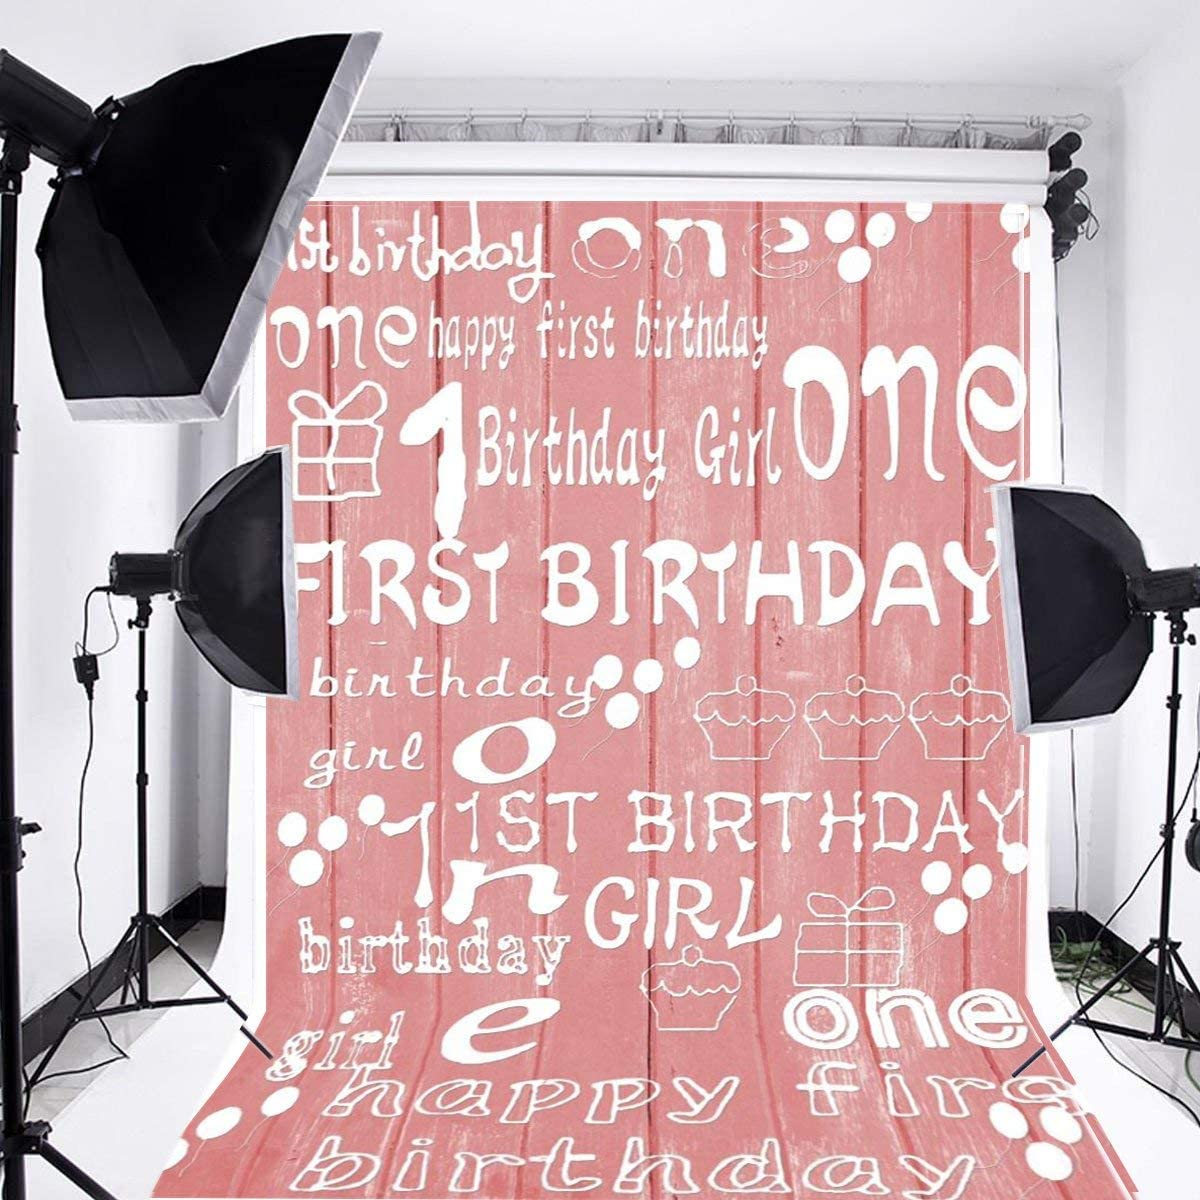 OFFicial Laeacco 3x5ft Sweet Pink Tone Wooden Backdrop Party Birthday Rapid rise One